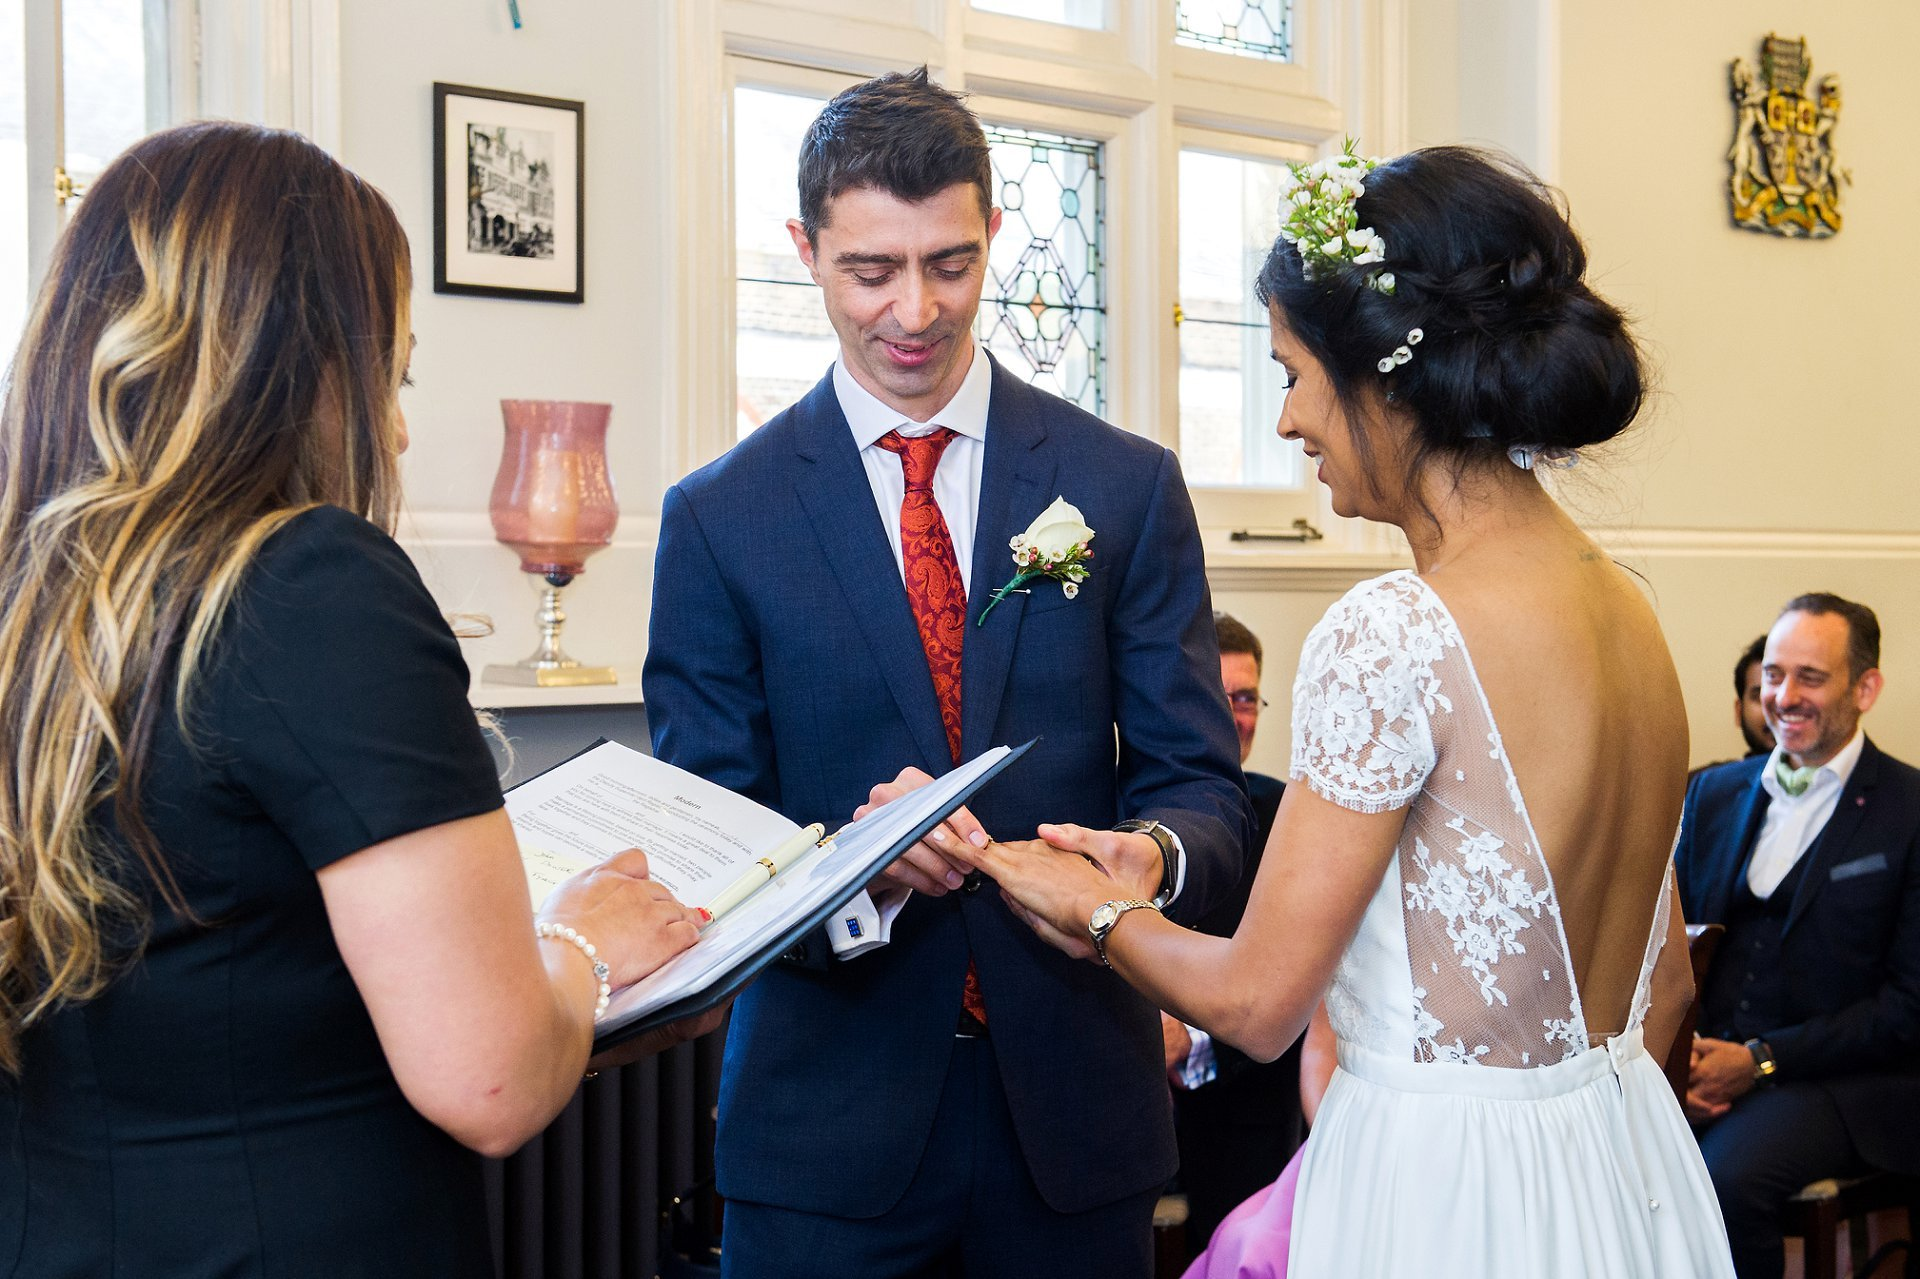 register office wedding photographer emma duggan during ring exchange at mayfair library